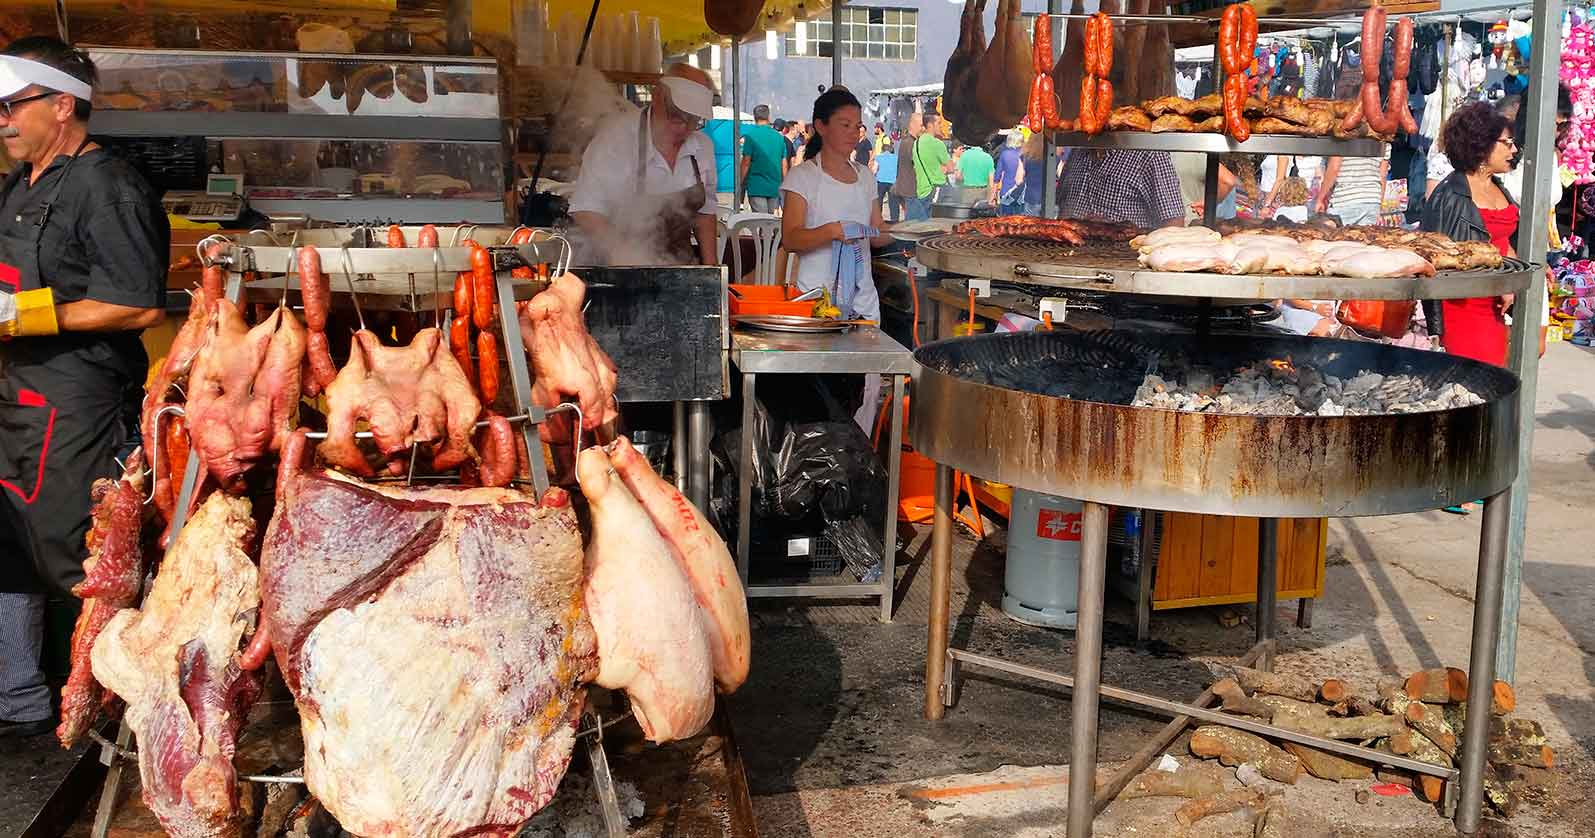 Grilled meat in Gijon